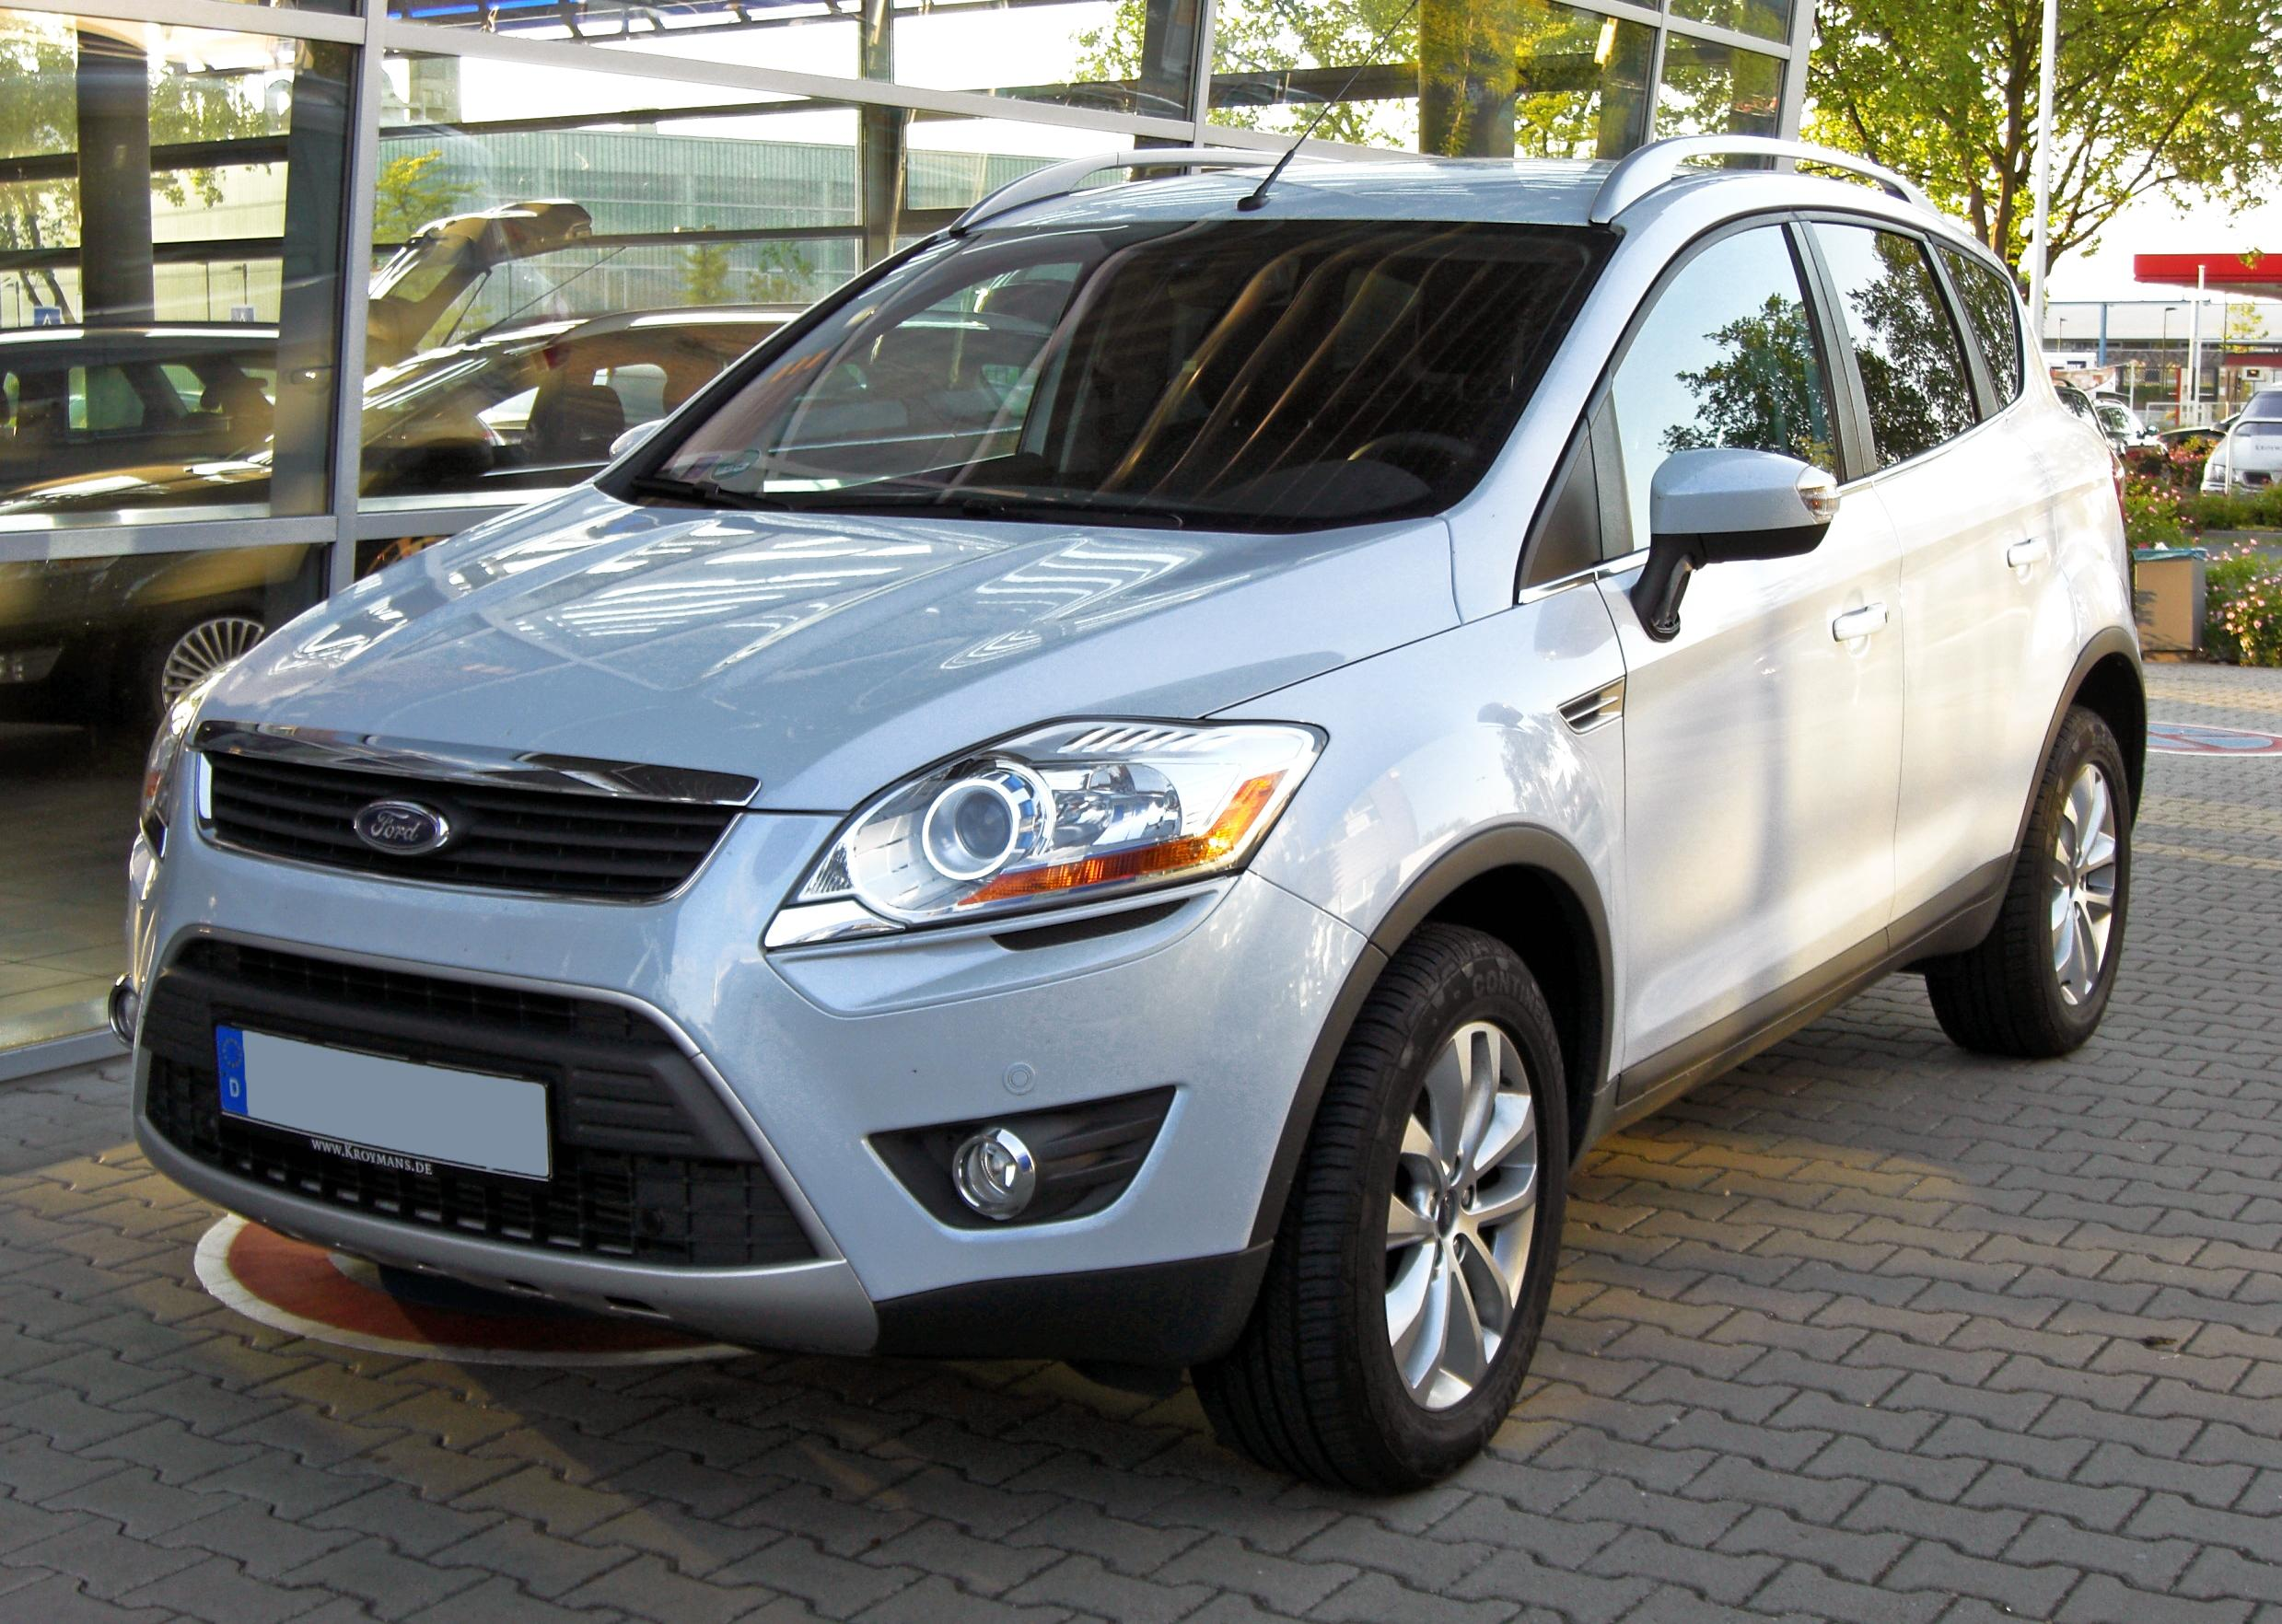 Image Result For Ford Kuga Size